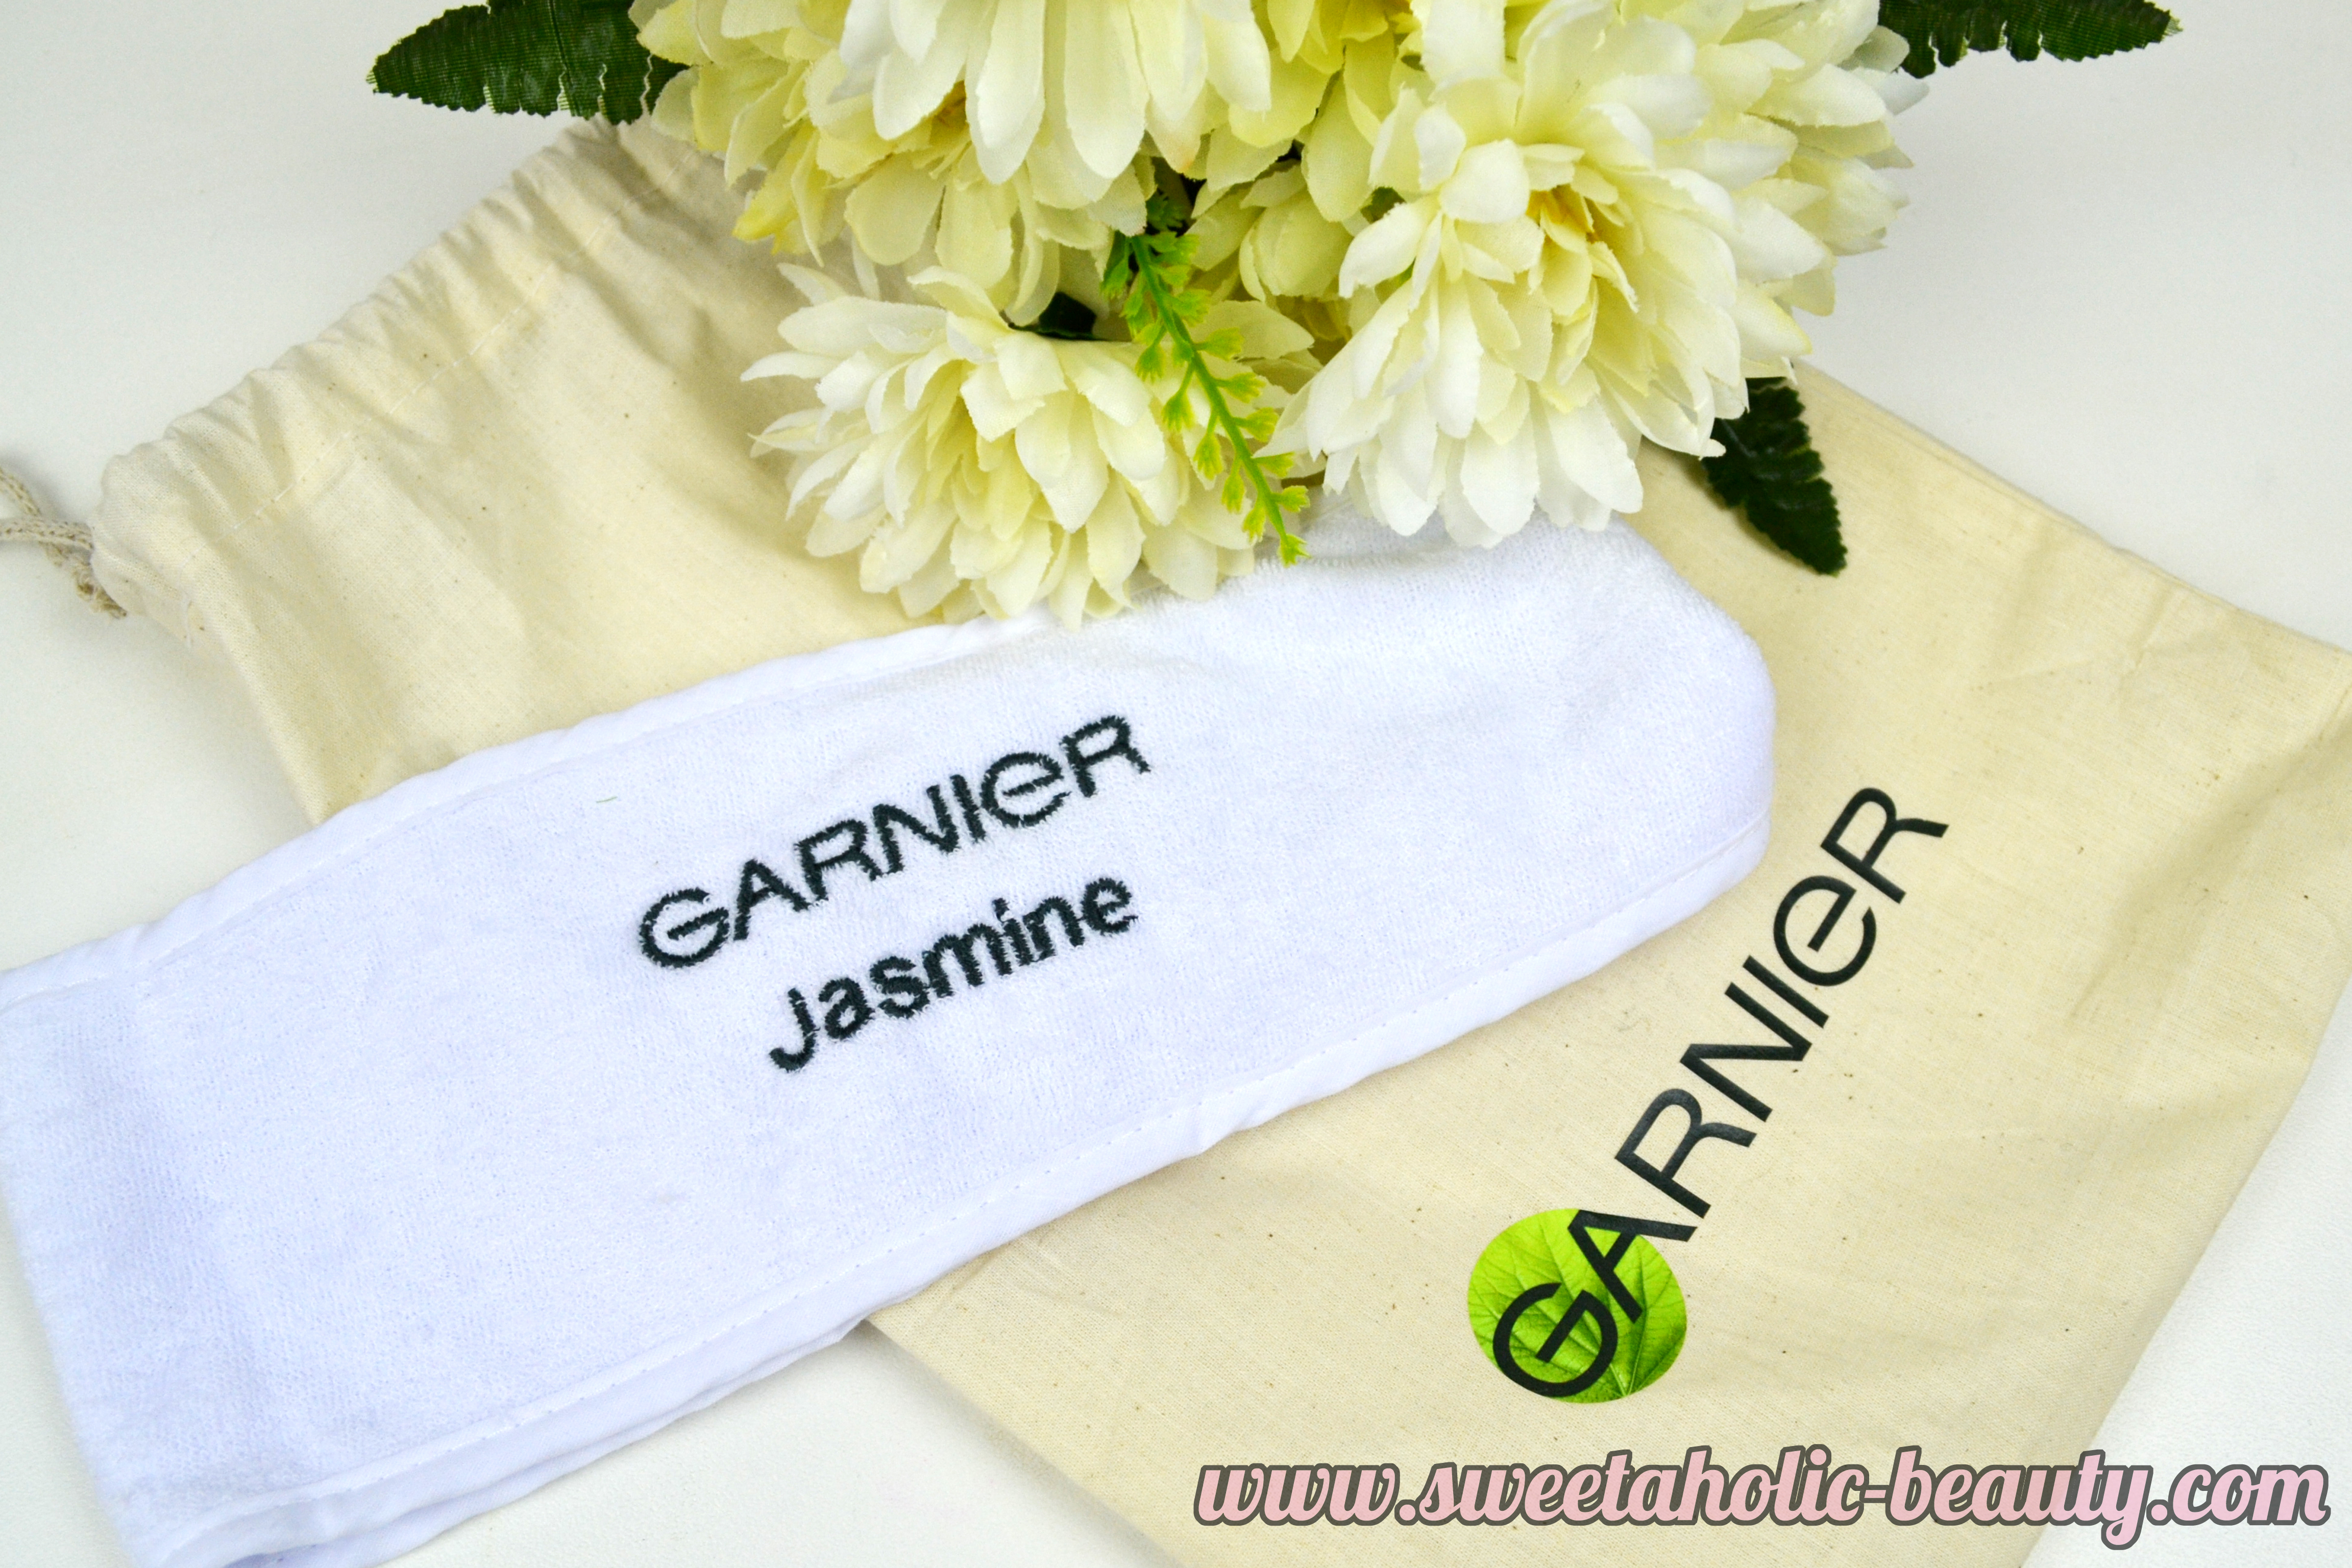 New Garnier Skin Active Products - Sweetaholic Beauty